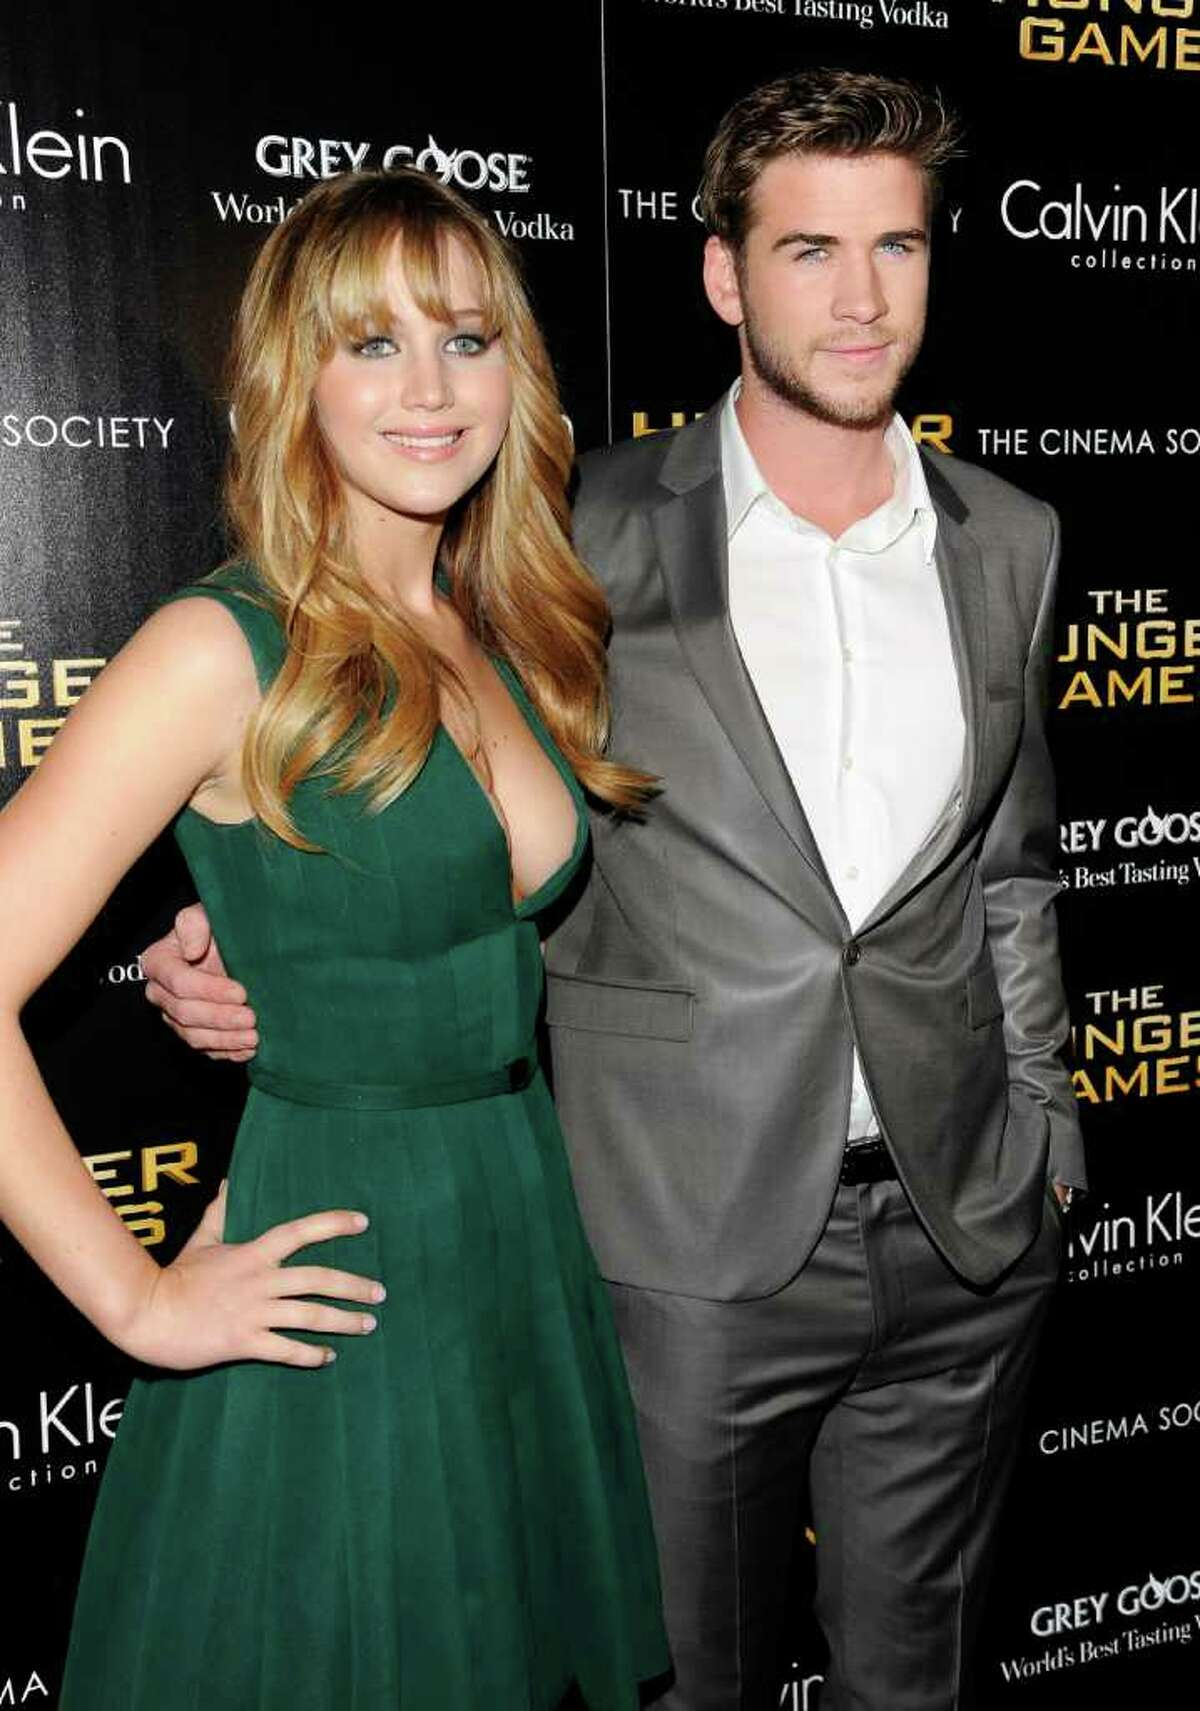 Actors Jennifer Lawrence, left, and Liam Hemsworth attend a special screening of